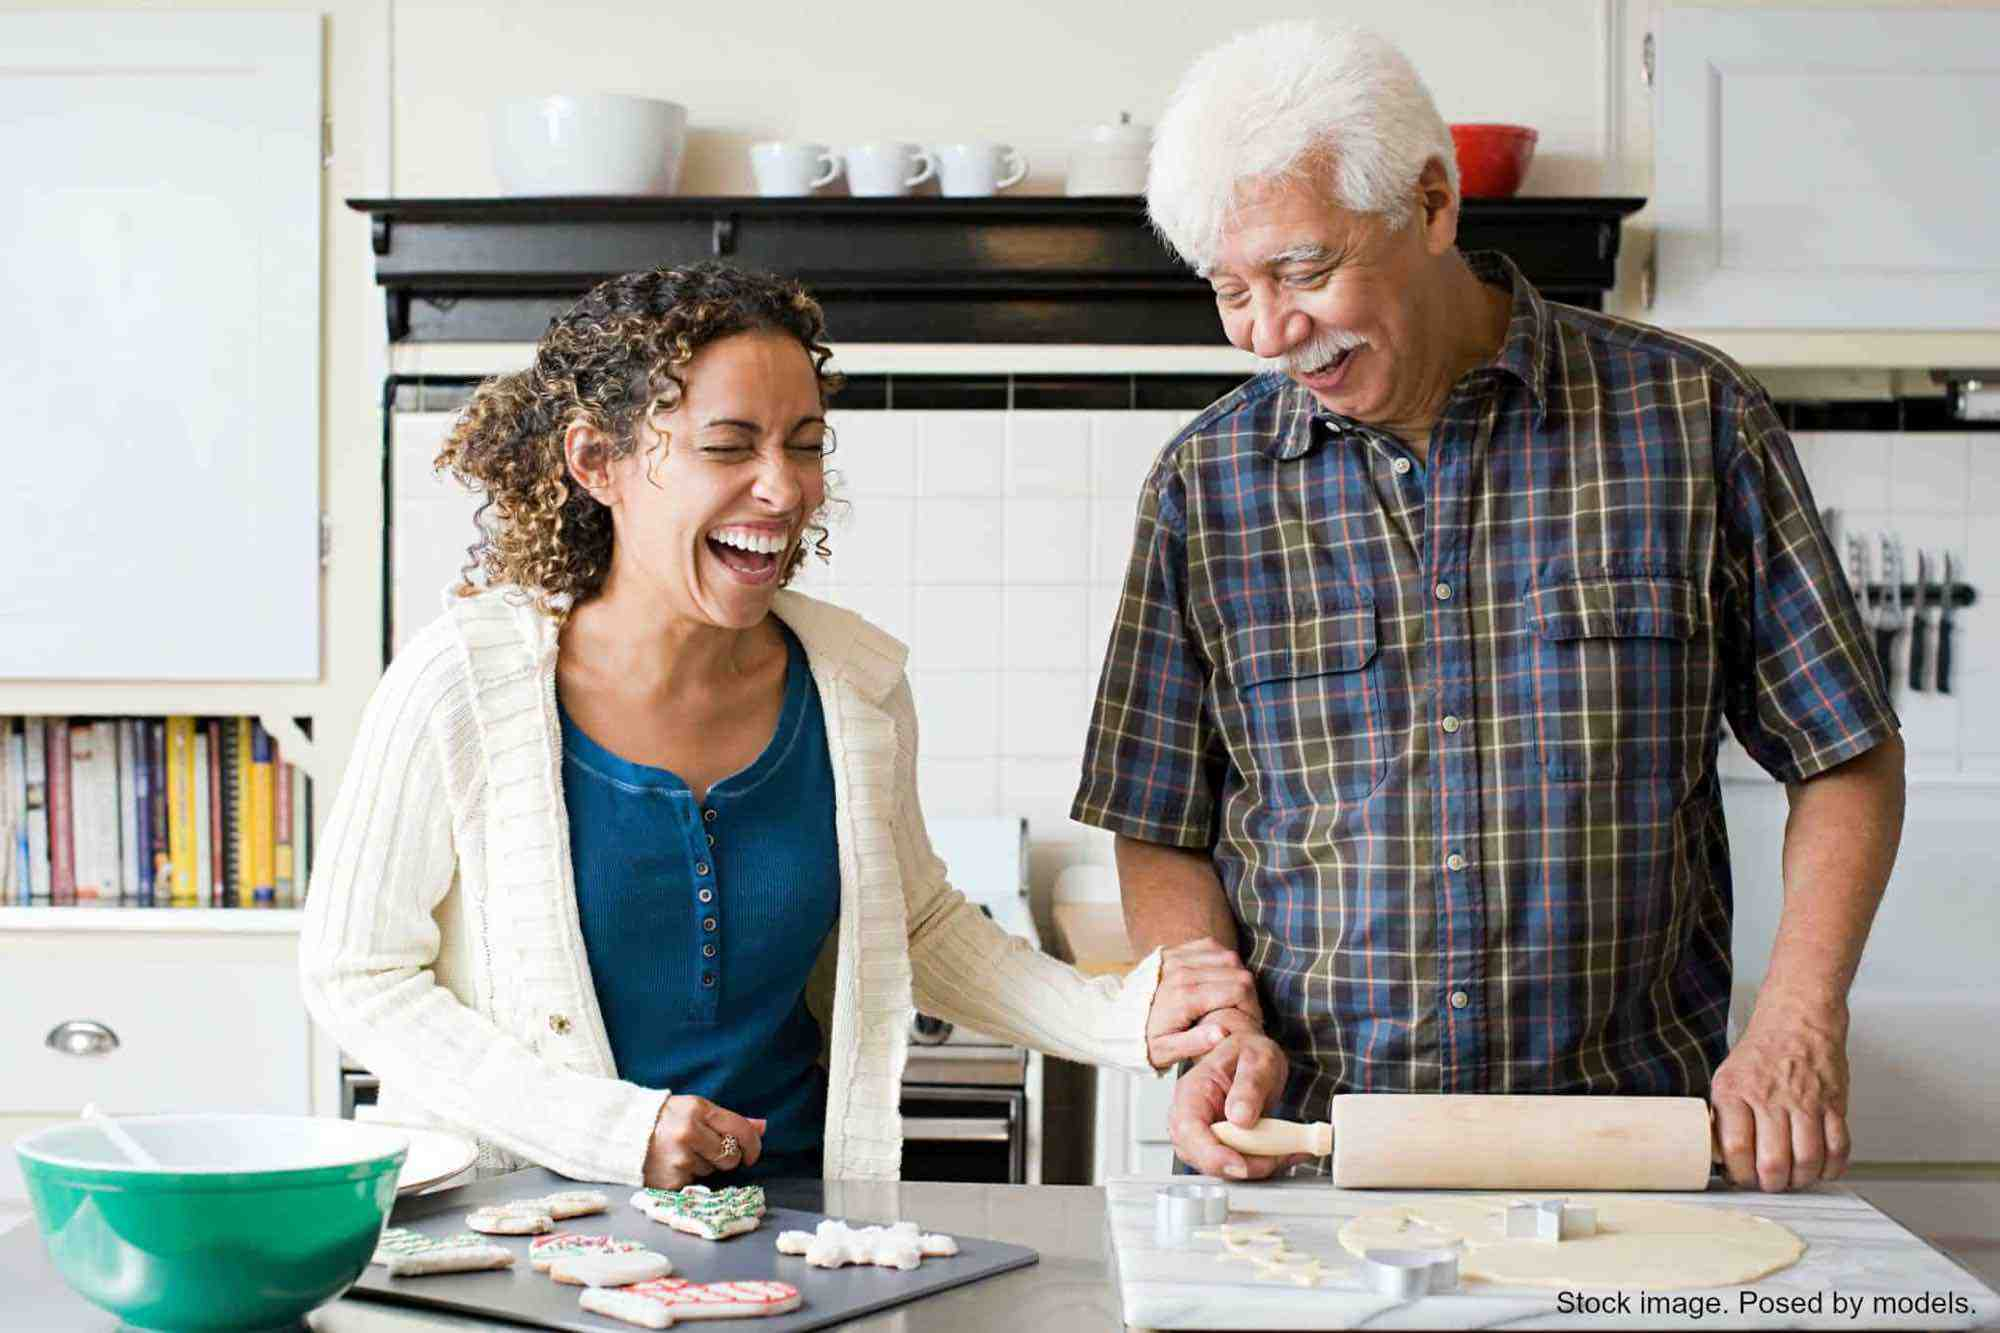 Grown woman and her dad rolling out cookies and laughing. Stock photo. Posed by models.